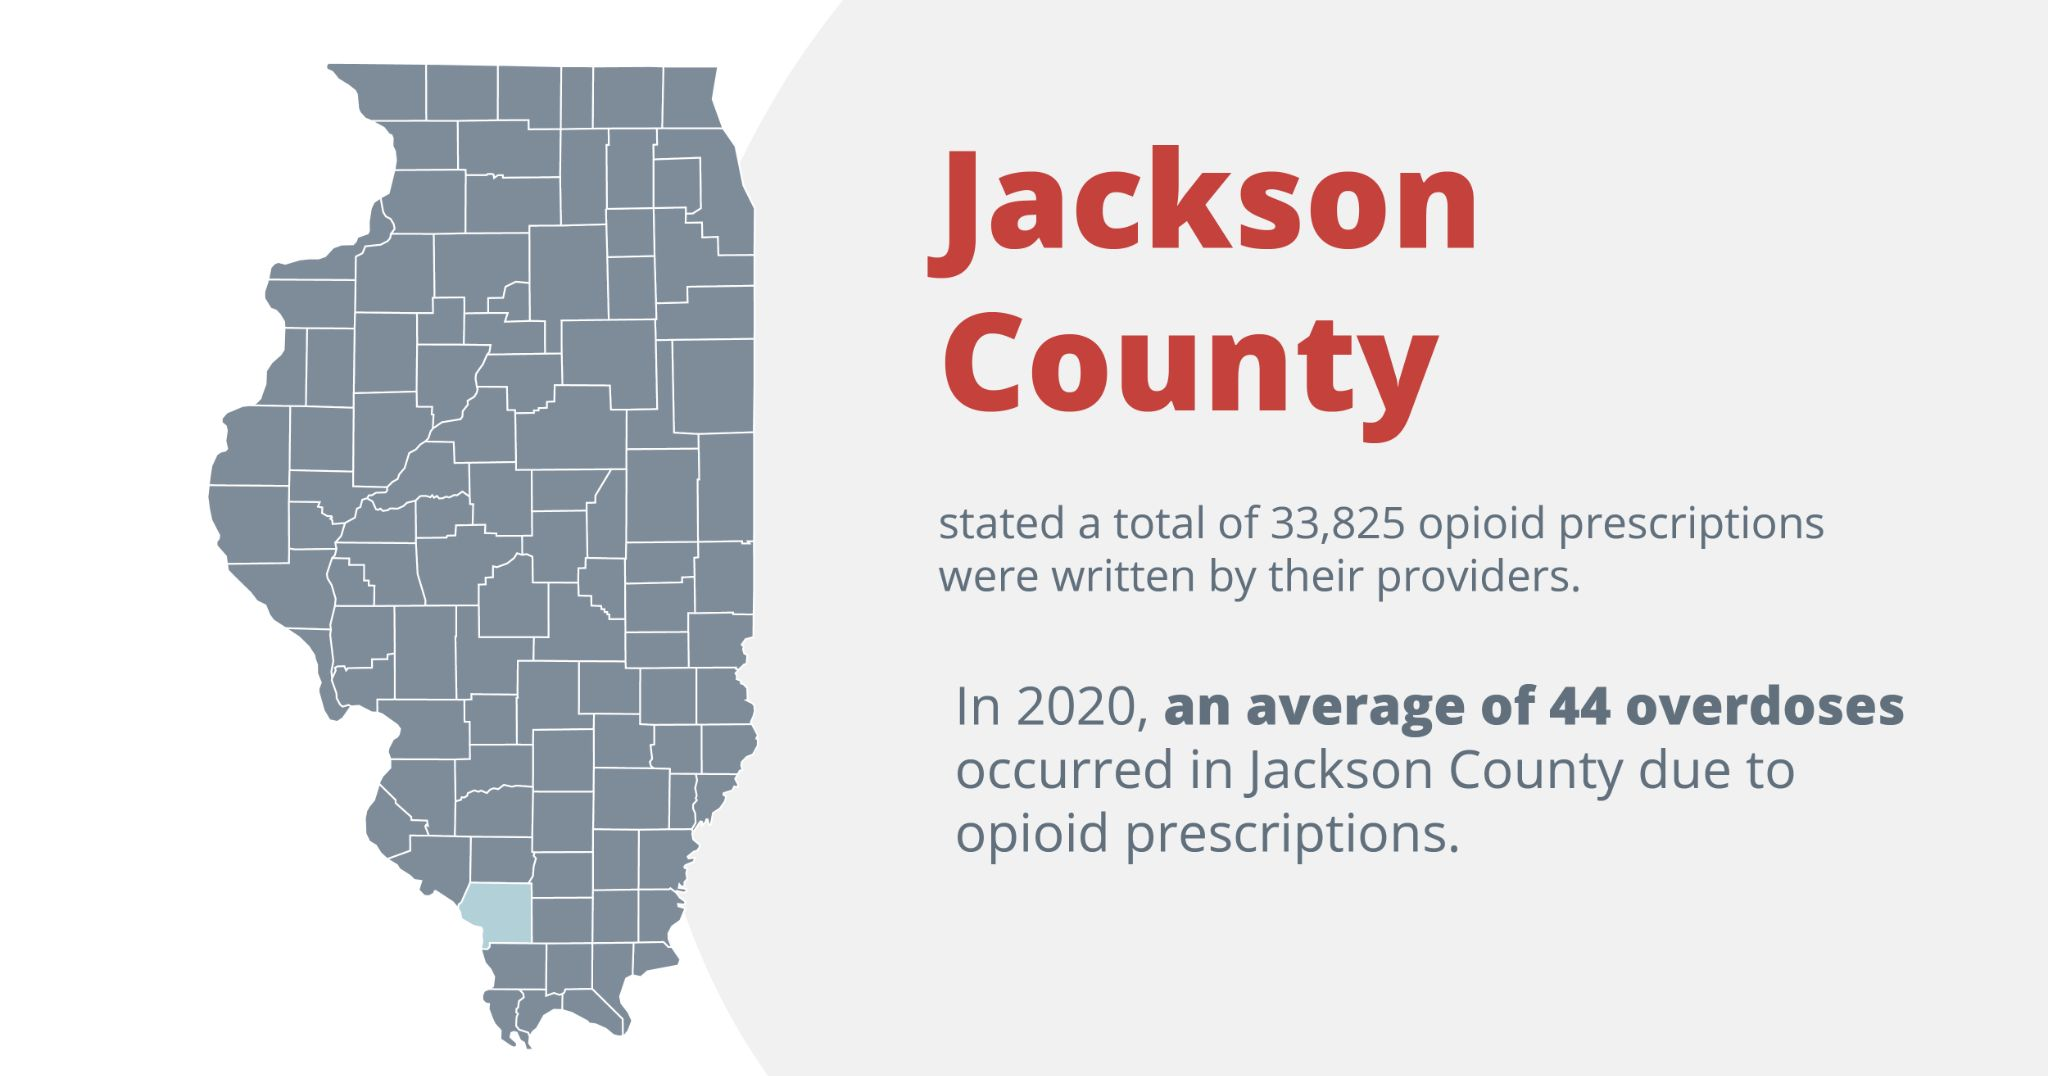 Jackson county listed a total of 33,825 opioid prescriptions were written to their residents. In 2020, an average of 44 overdoses occurred in Jackson county due to opioid prescriptions